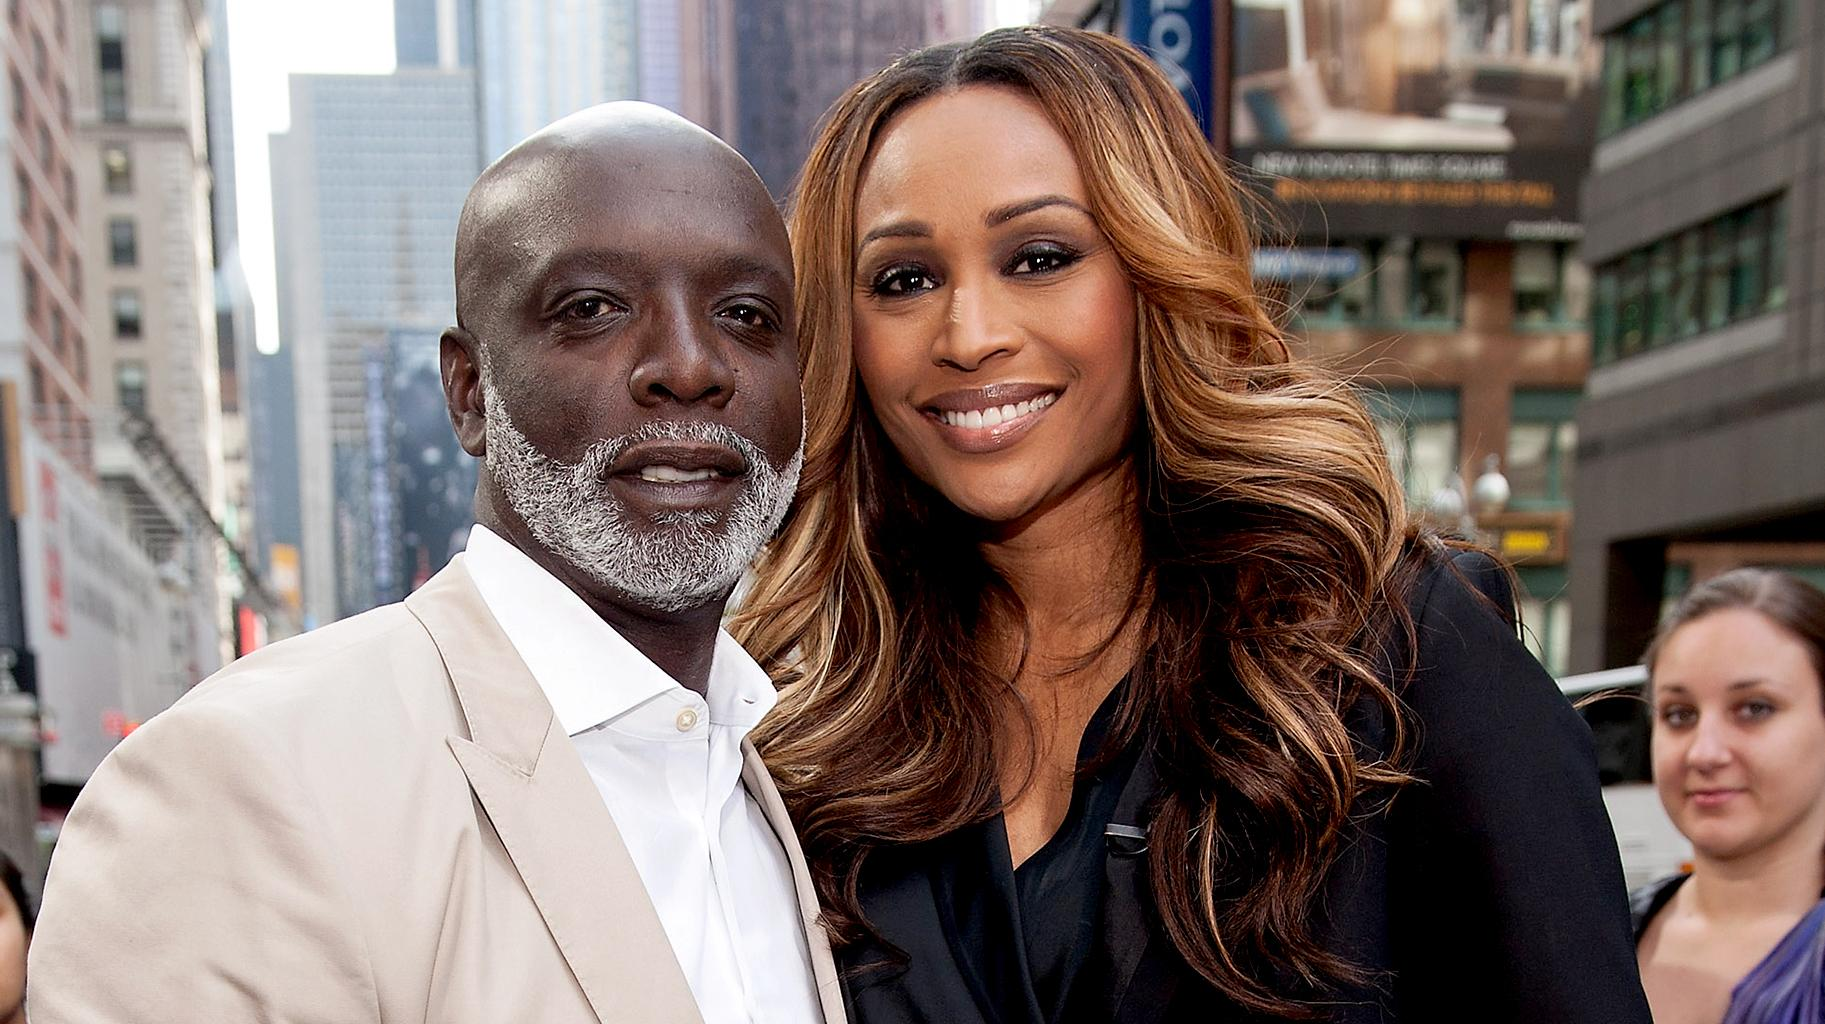 Cynthia Bailey's Ex, Peter Thomas Gets Arrested - His Mugshot Is Public